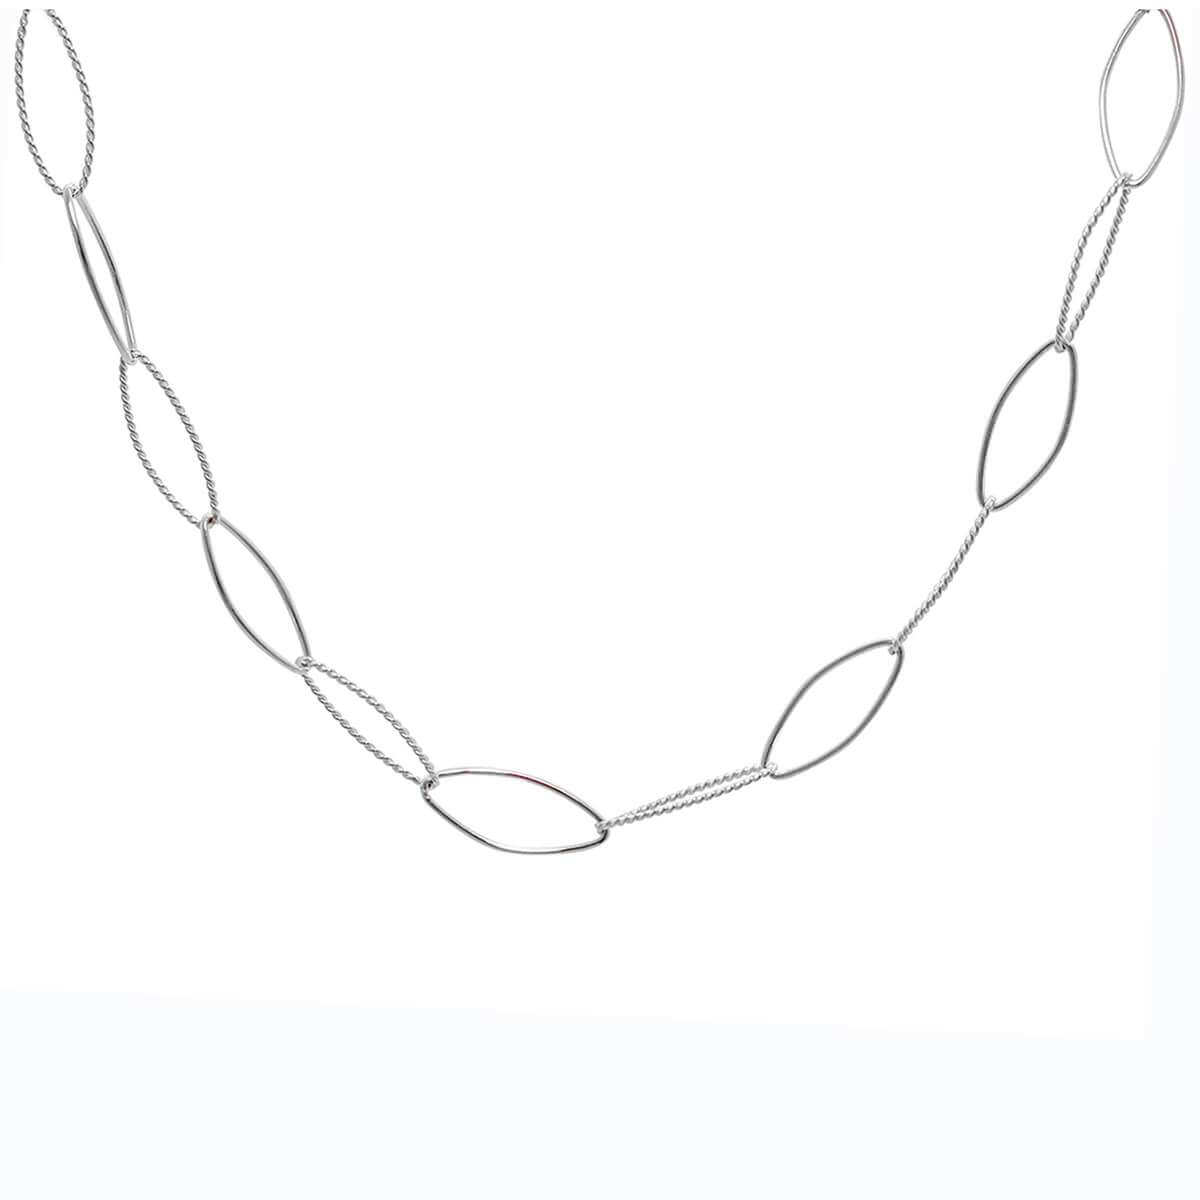 Sterling Silver Twisted Oval Link Chain Necklace 14+2 Inches